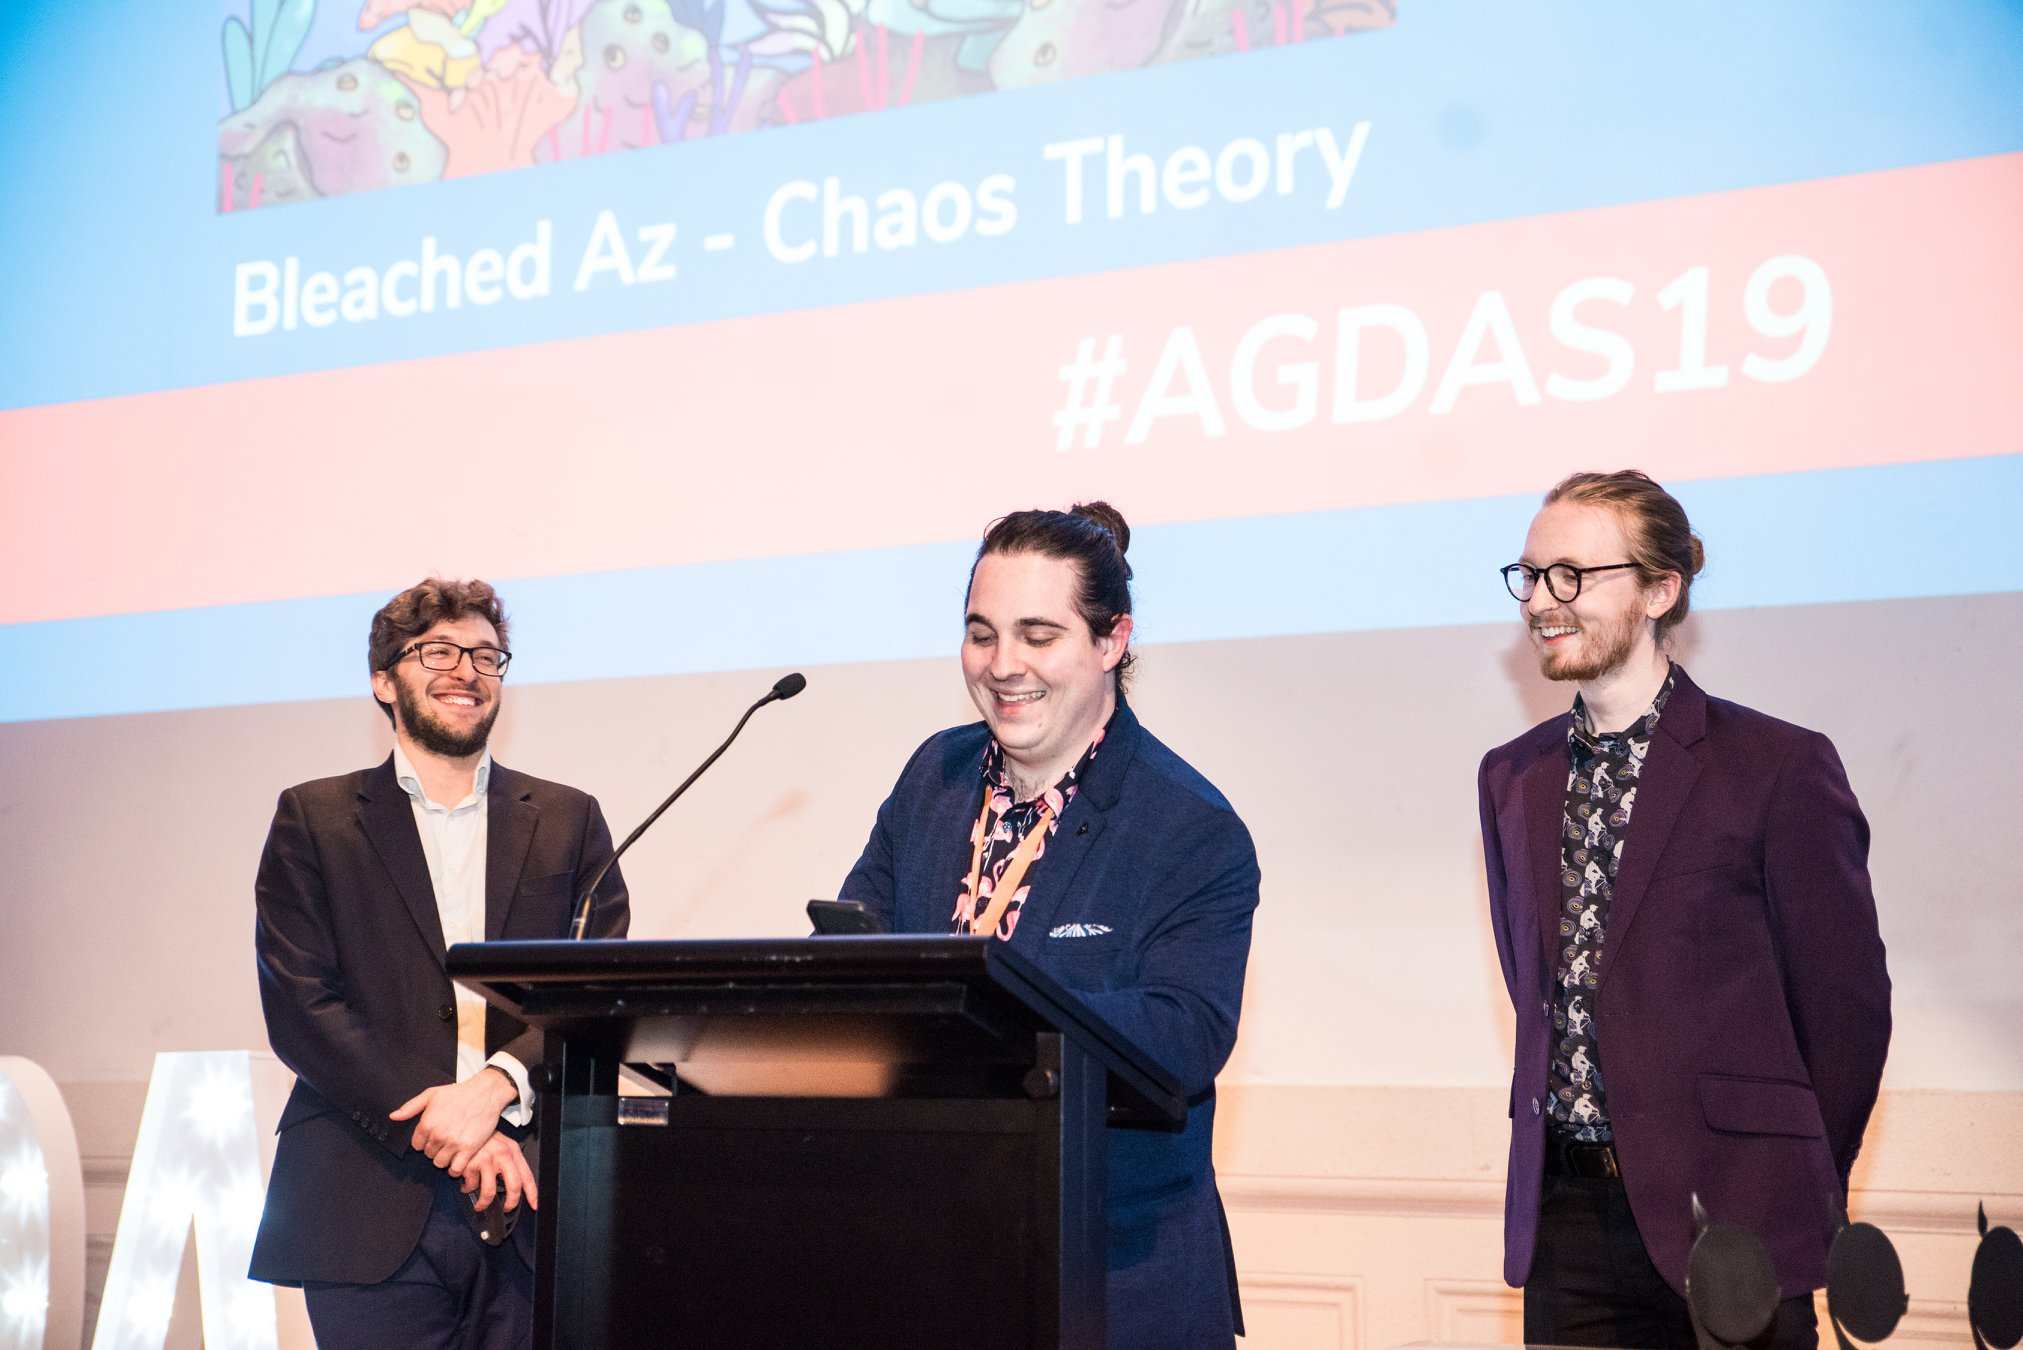 Chaos Theory's Executive Producer James Lockrey, Senior Producer Ryan Penning and Software Developer Rory Dungan accepting the Best Serious Game 2019 for Bleached Az at the Australian Game Developer Awards 2019 (AGDAs)